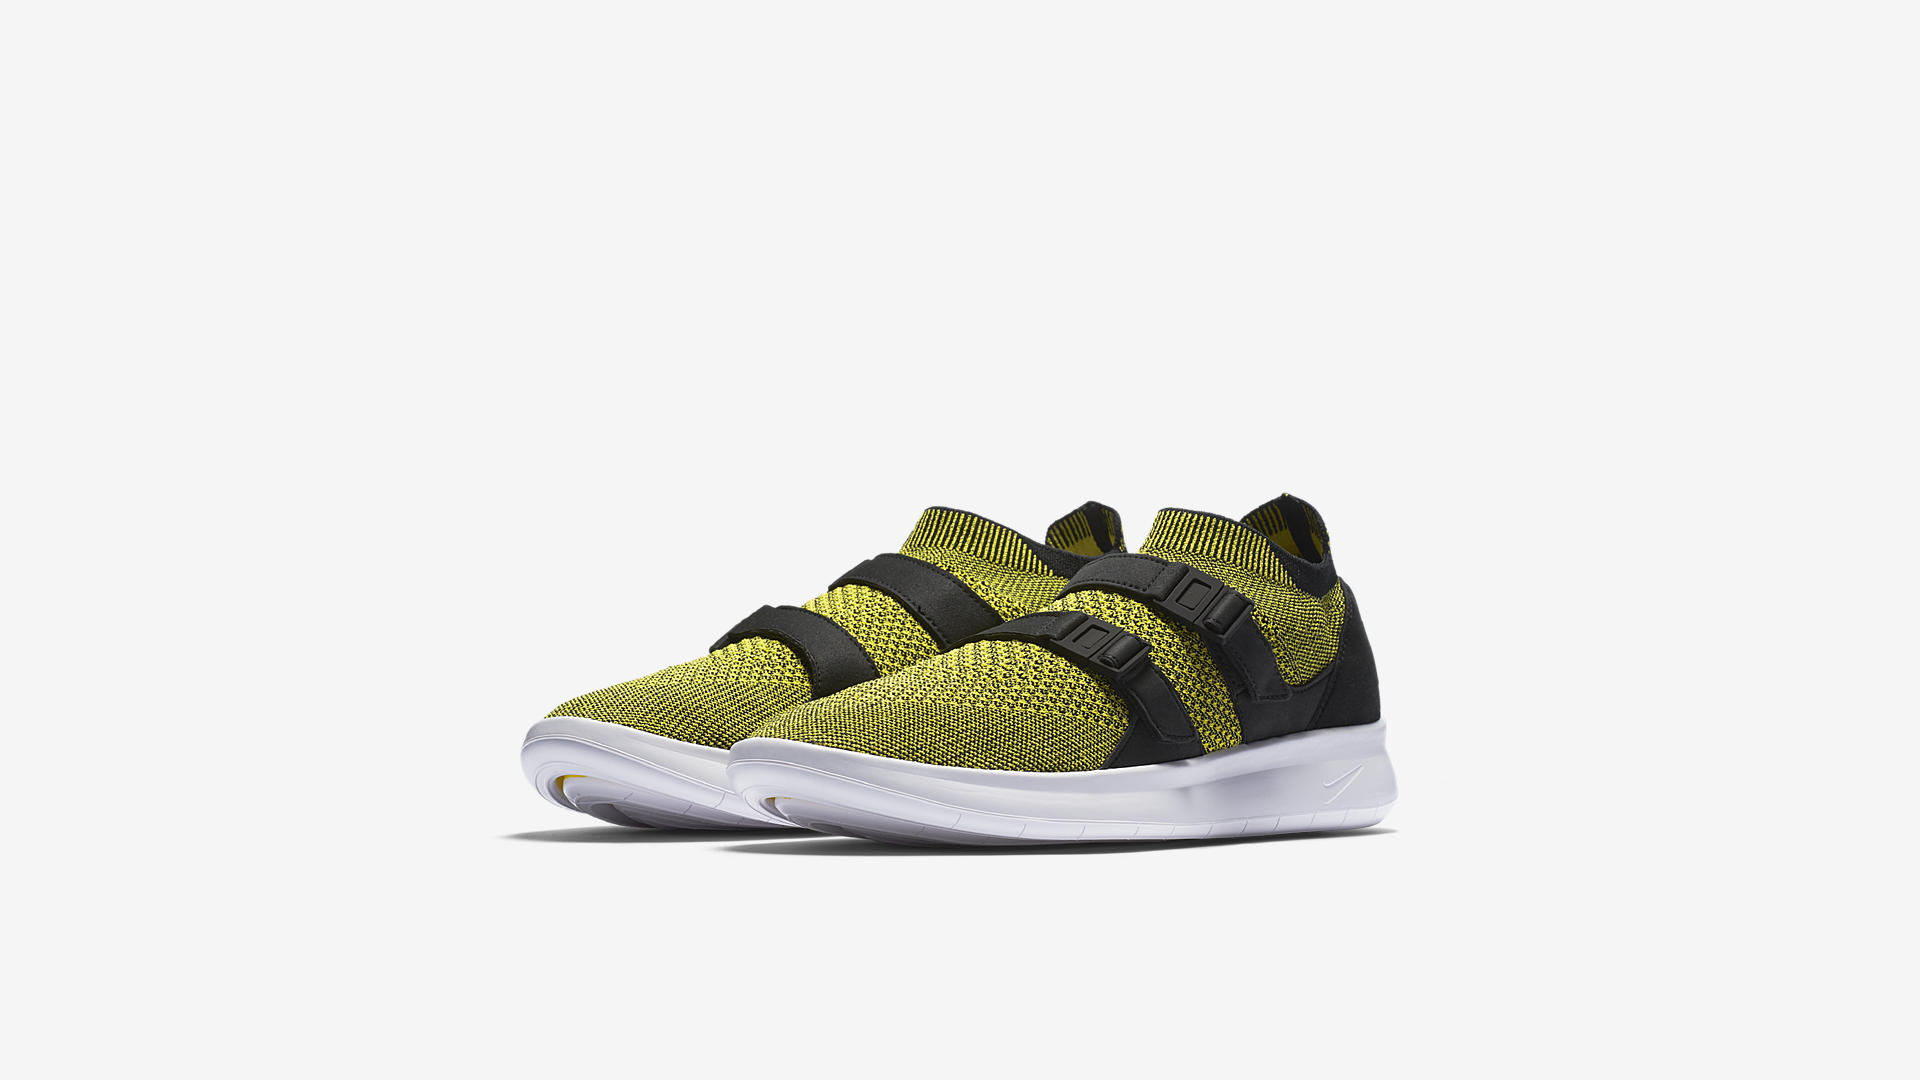 Nike Air Sock Racer Ultra Flyknit Yellow Strike 98022 700 1